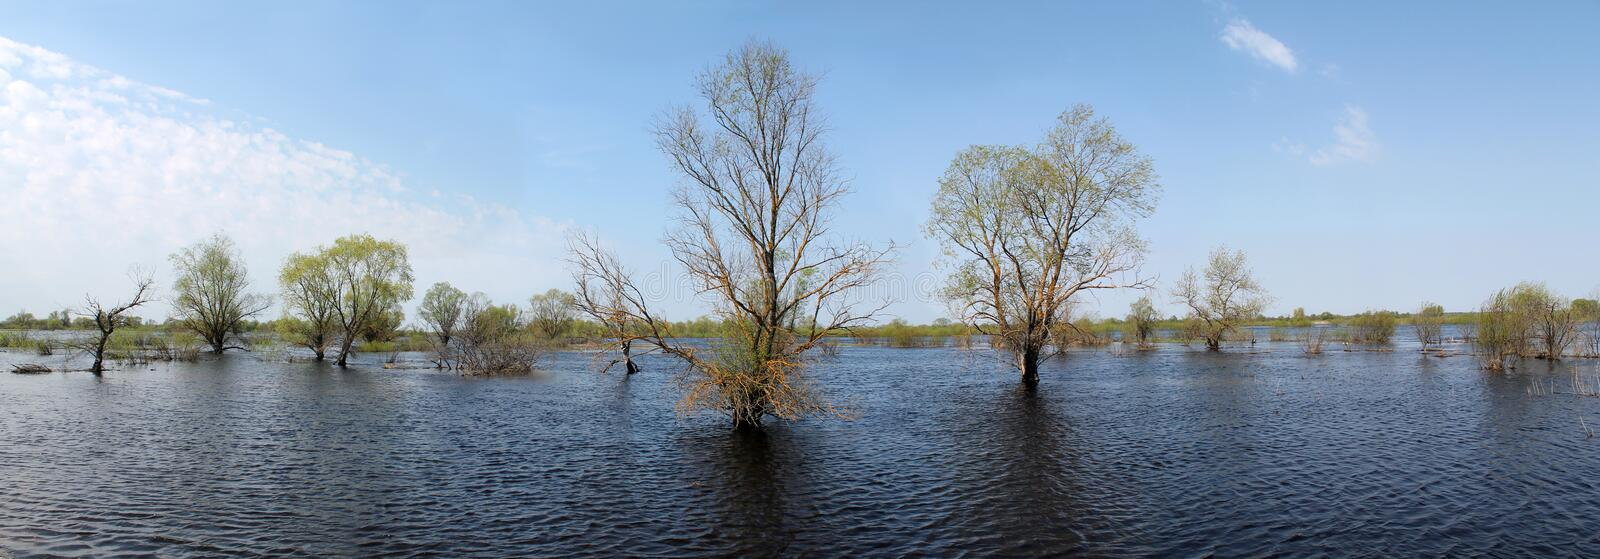 Trees in water. Panoramic landscape with spring flooding of Pripyat River near Turov, Belarus. Trees in water. Panoramic landscape with spring flooding of the royalty free stock images